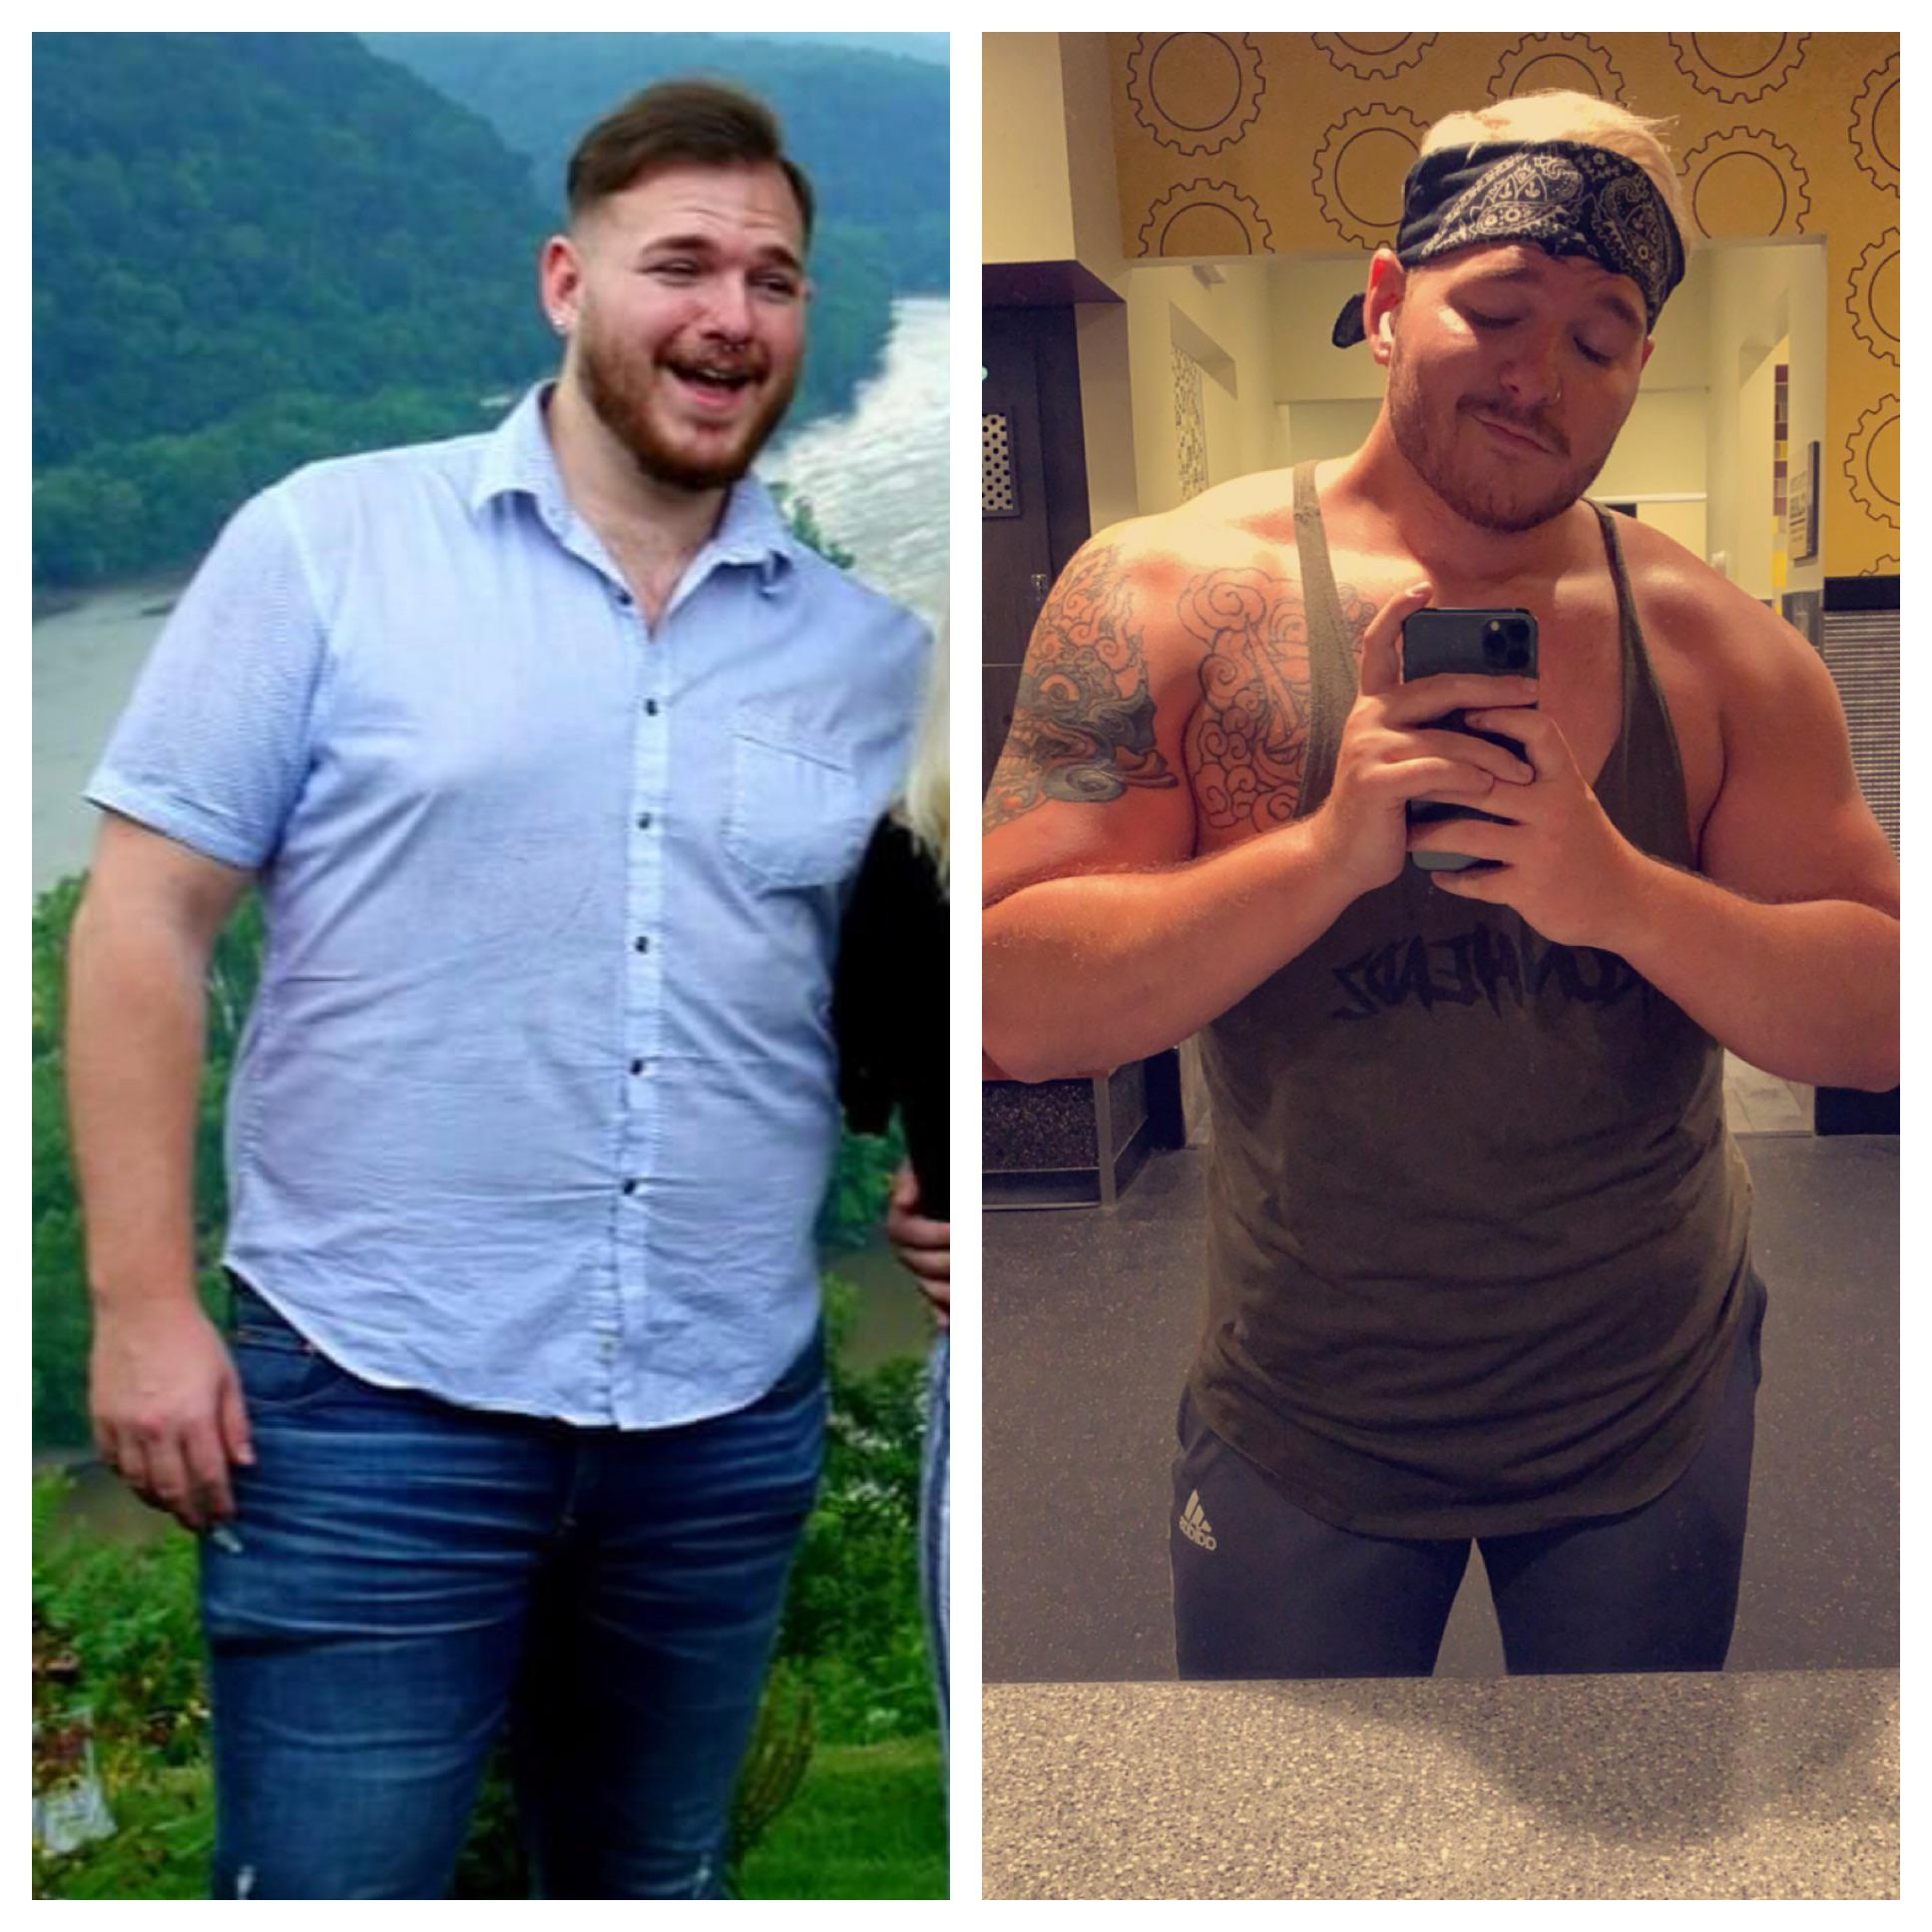 [image] About a year ago I got tired of being uncomfortable in my own body. The pandemic delayed my transformation by a few months but I can finally say I'm happy in my skin.